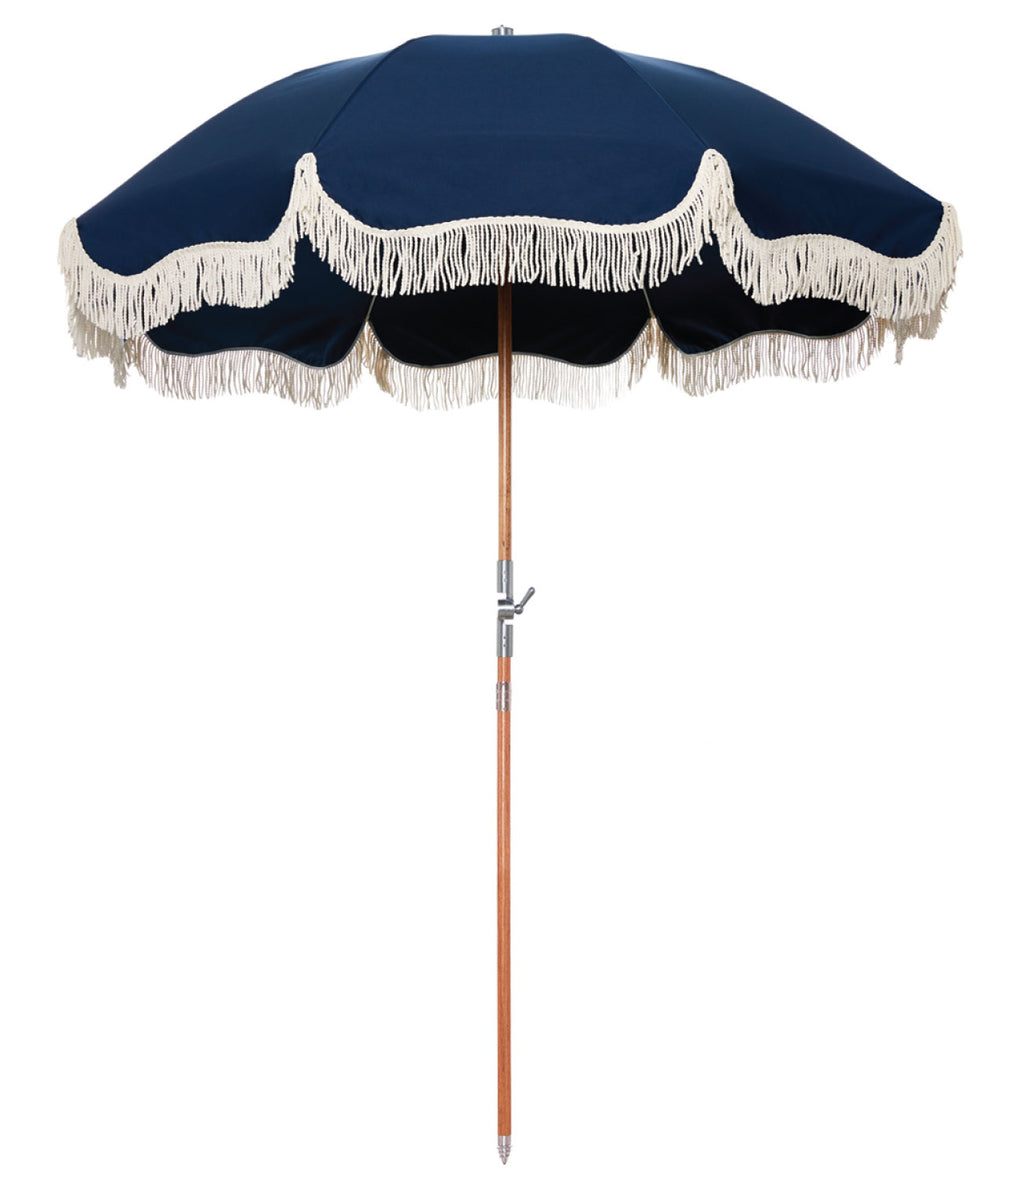 The Premium Beach Umbrella - Boathouse Navy